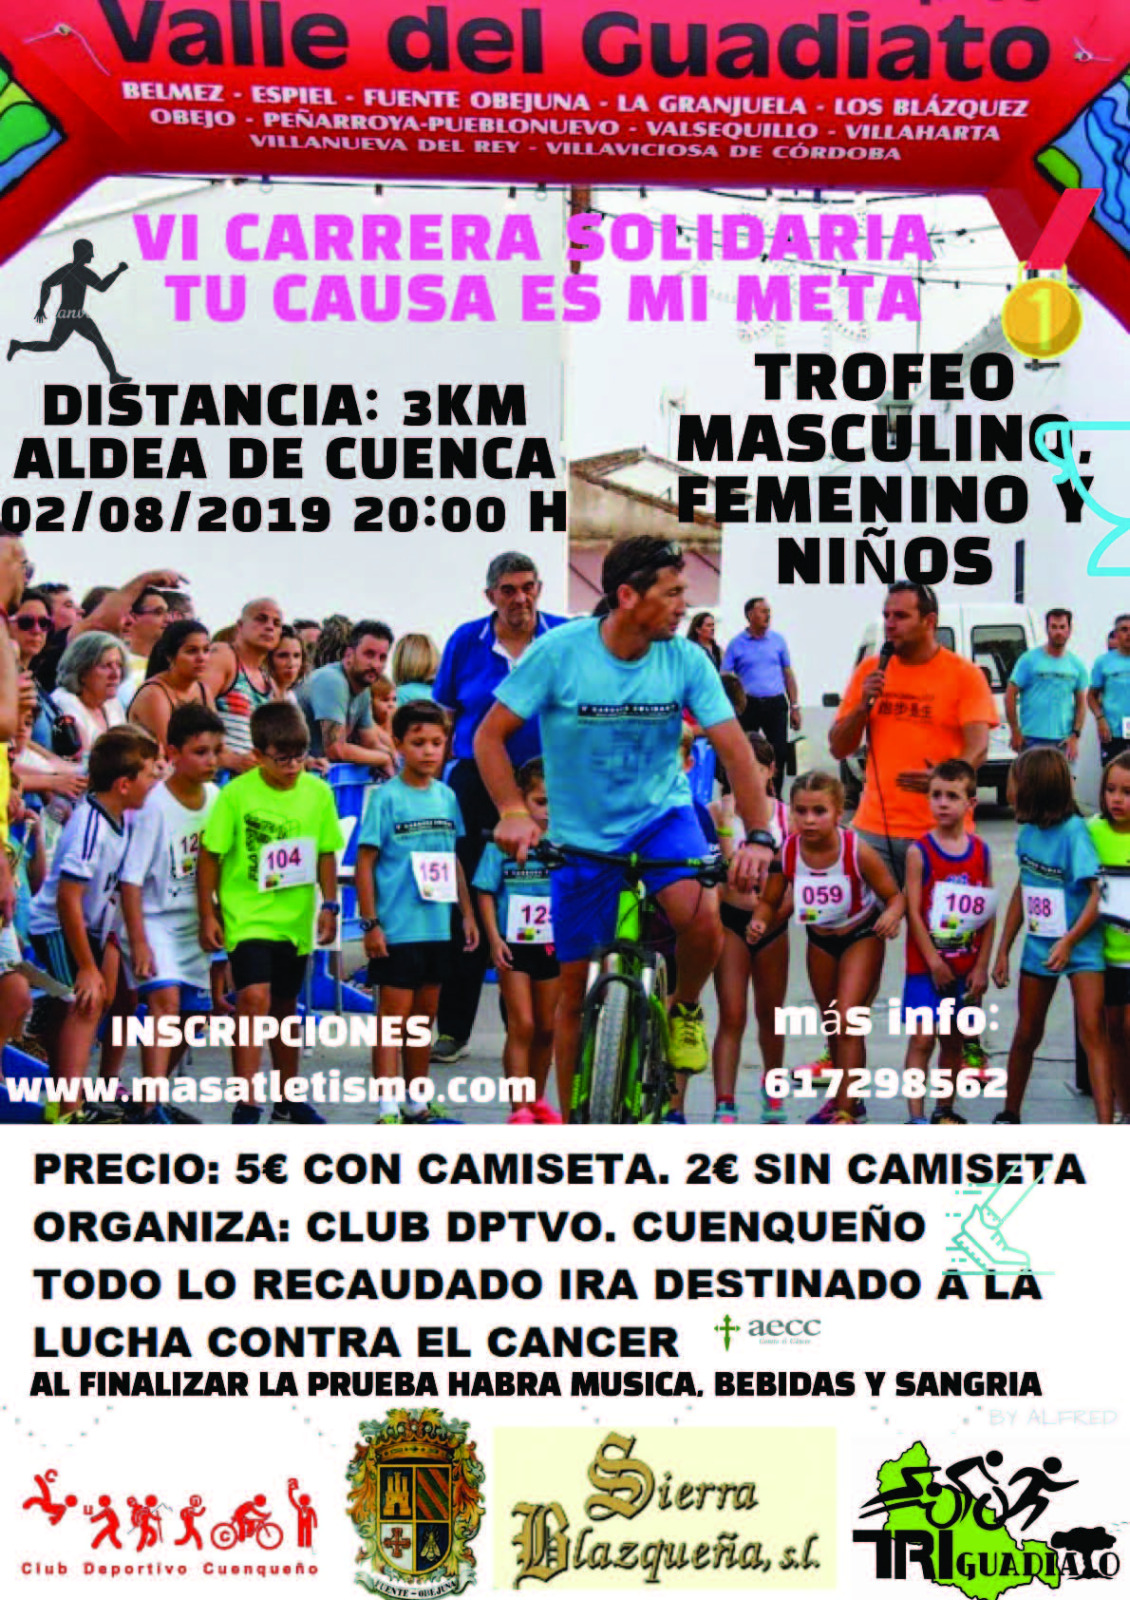 +ATLETISMO (609680378)